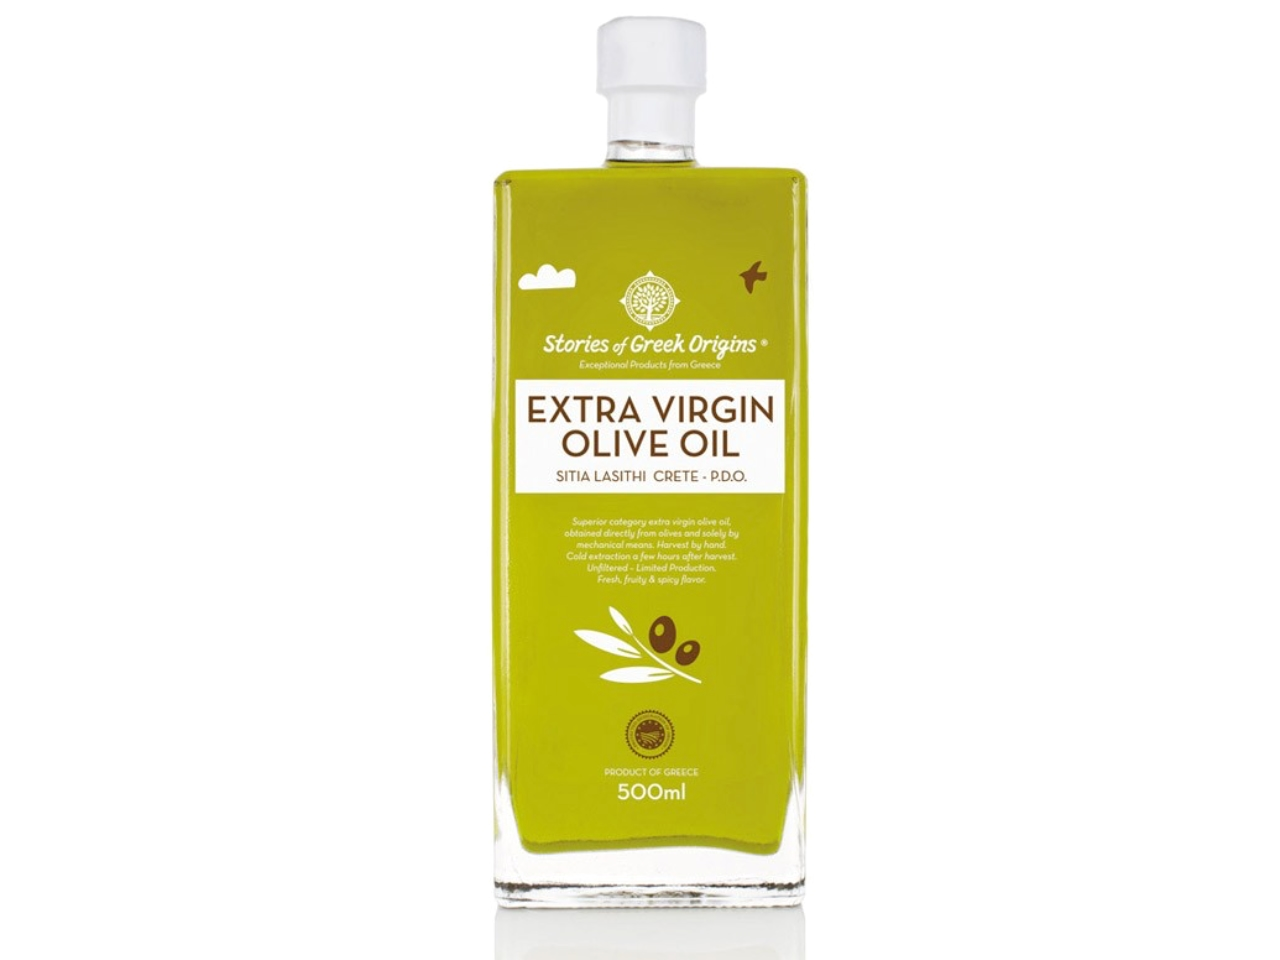 Extra virgin olive oil from Sitia